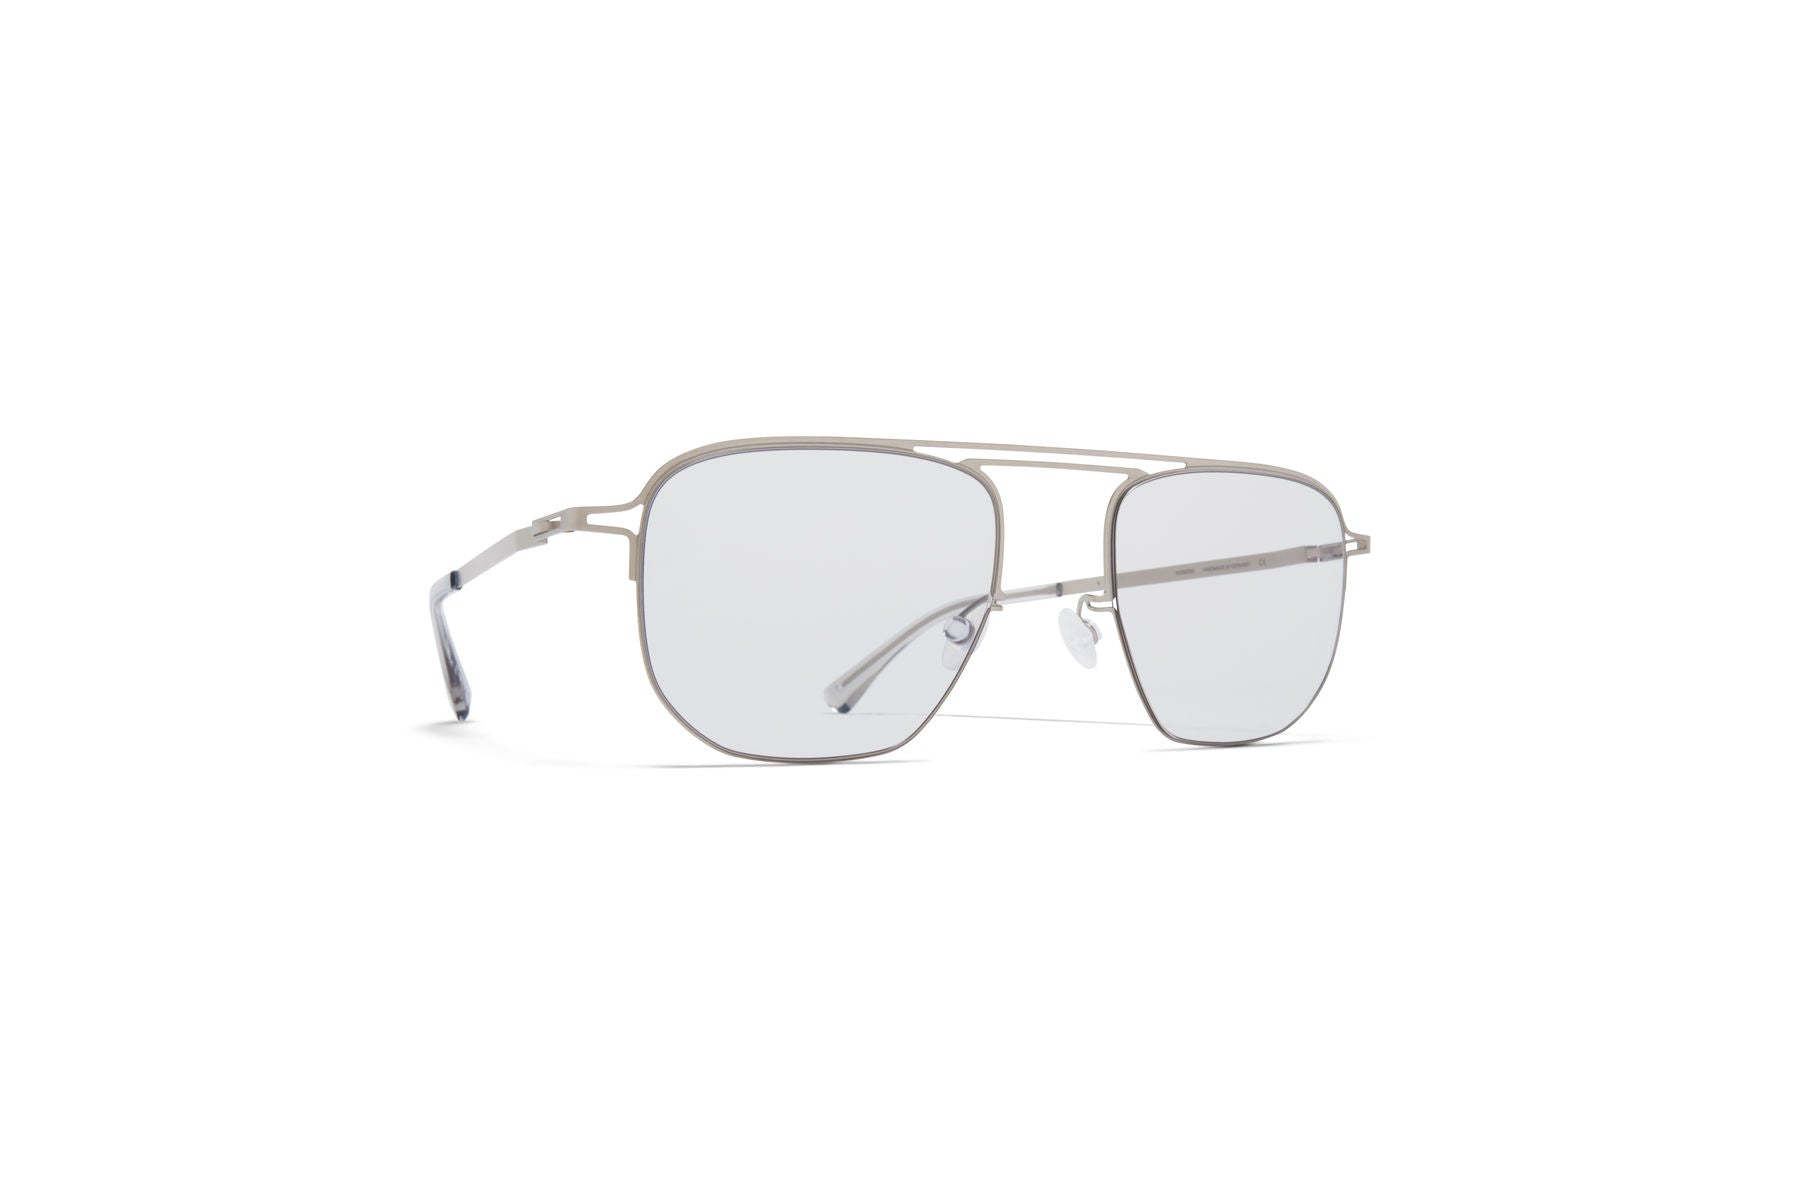 Mykita + Maison Margiela MMCRAFT 013 - City Optikhaus